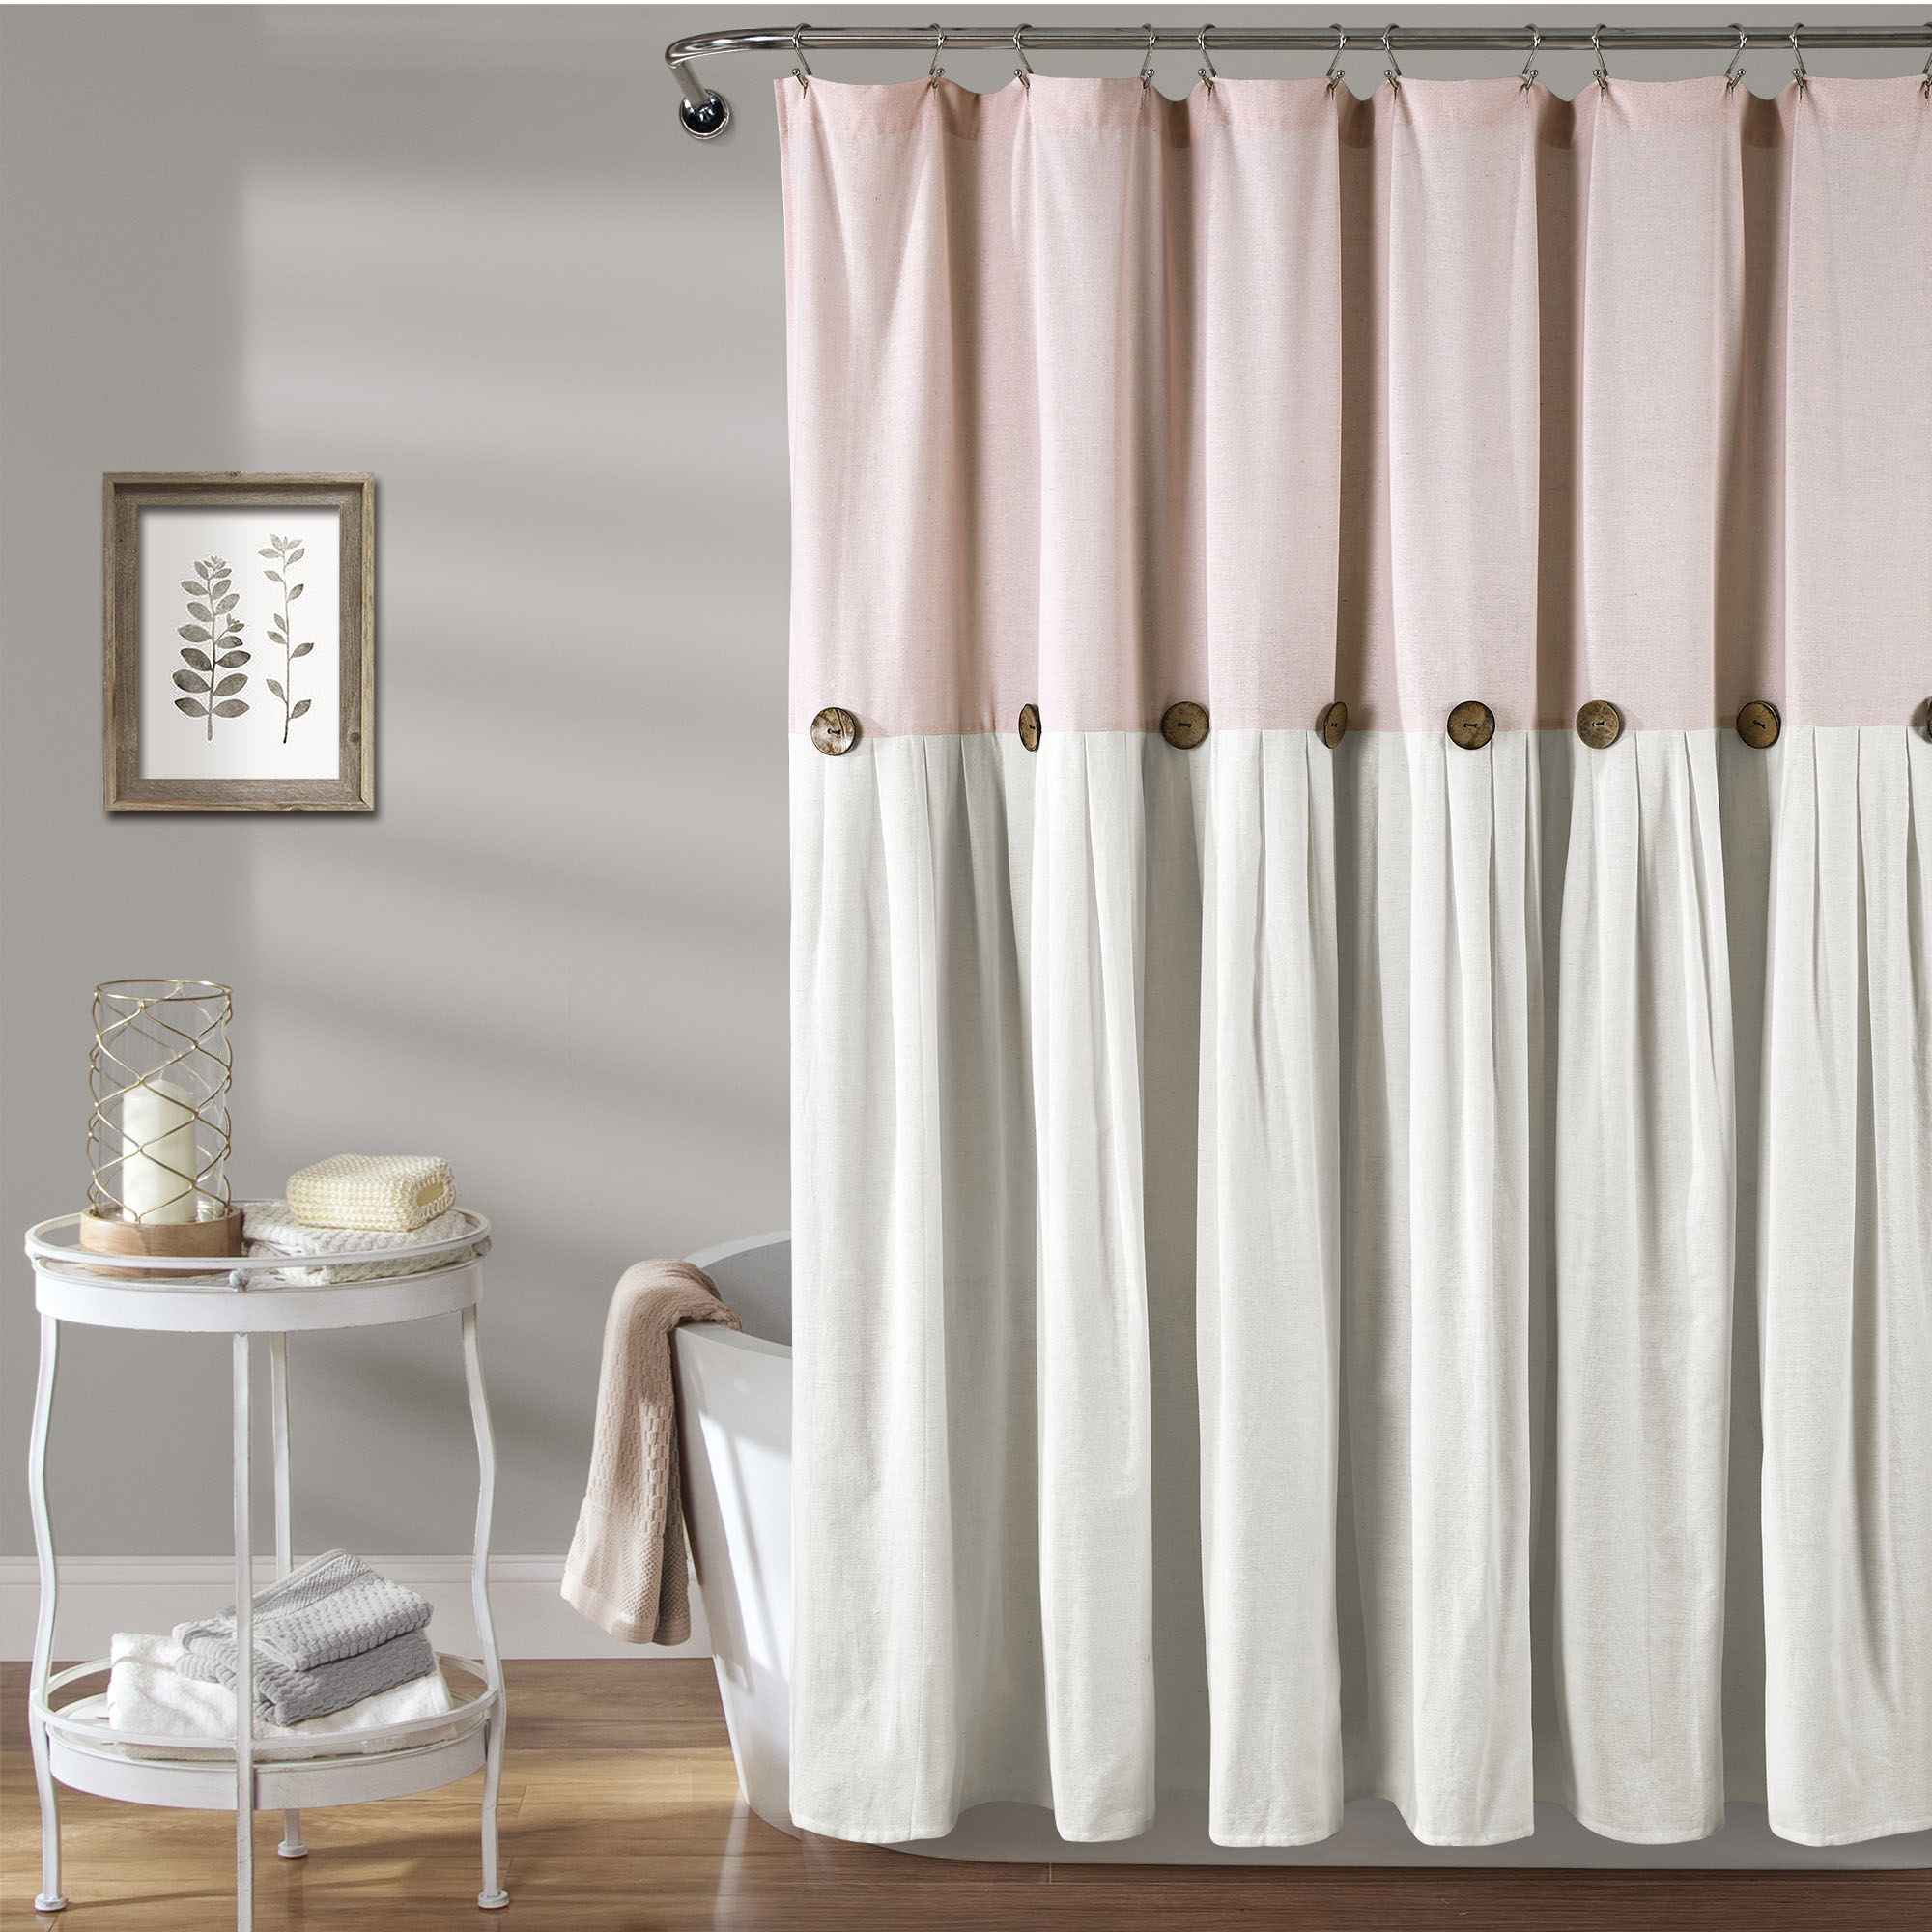 The linen curtain, in pink and white, which has button flourishes across the center